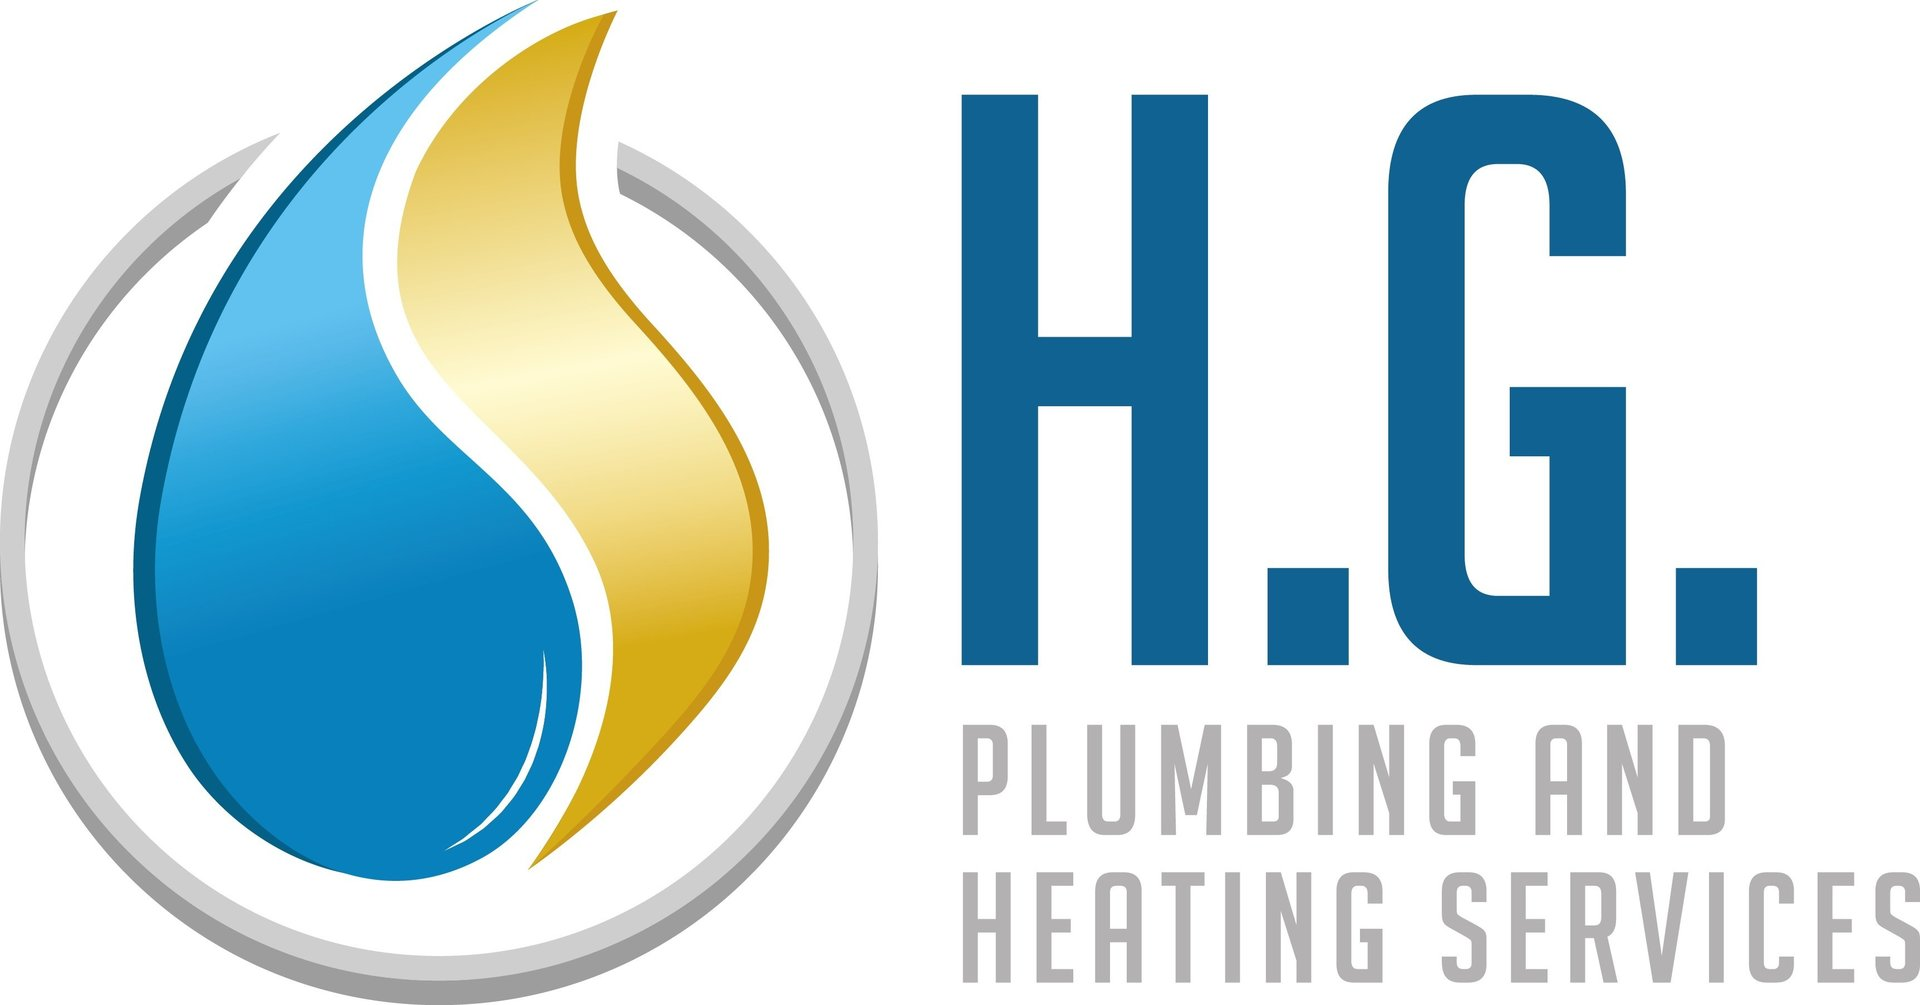 H.G. PLUMBING AND HEATING SERVICES logo